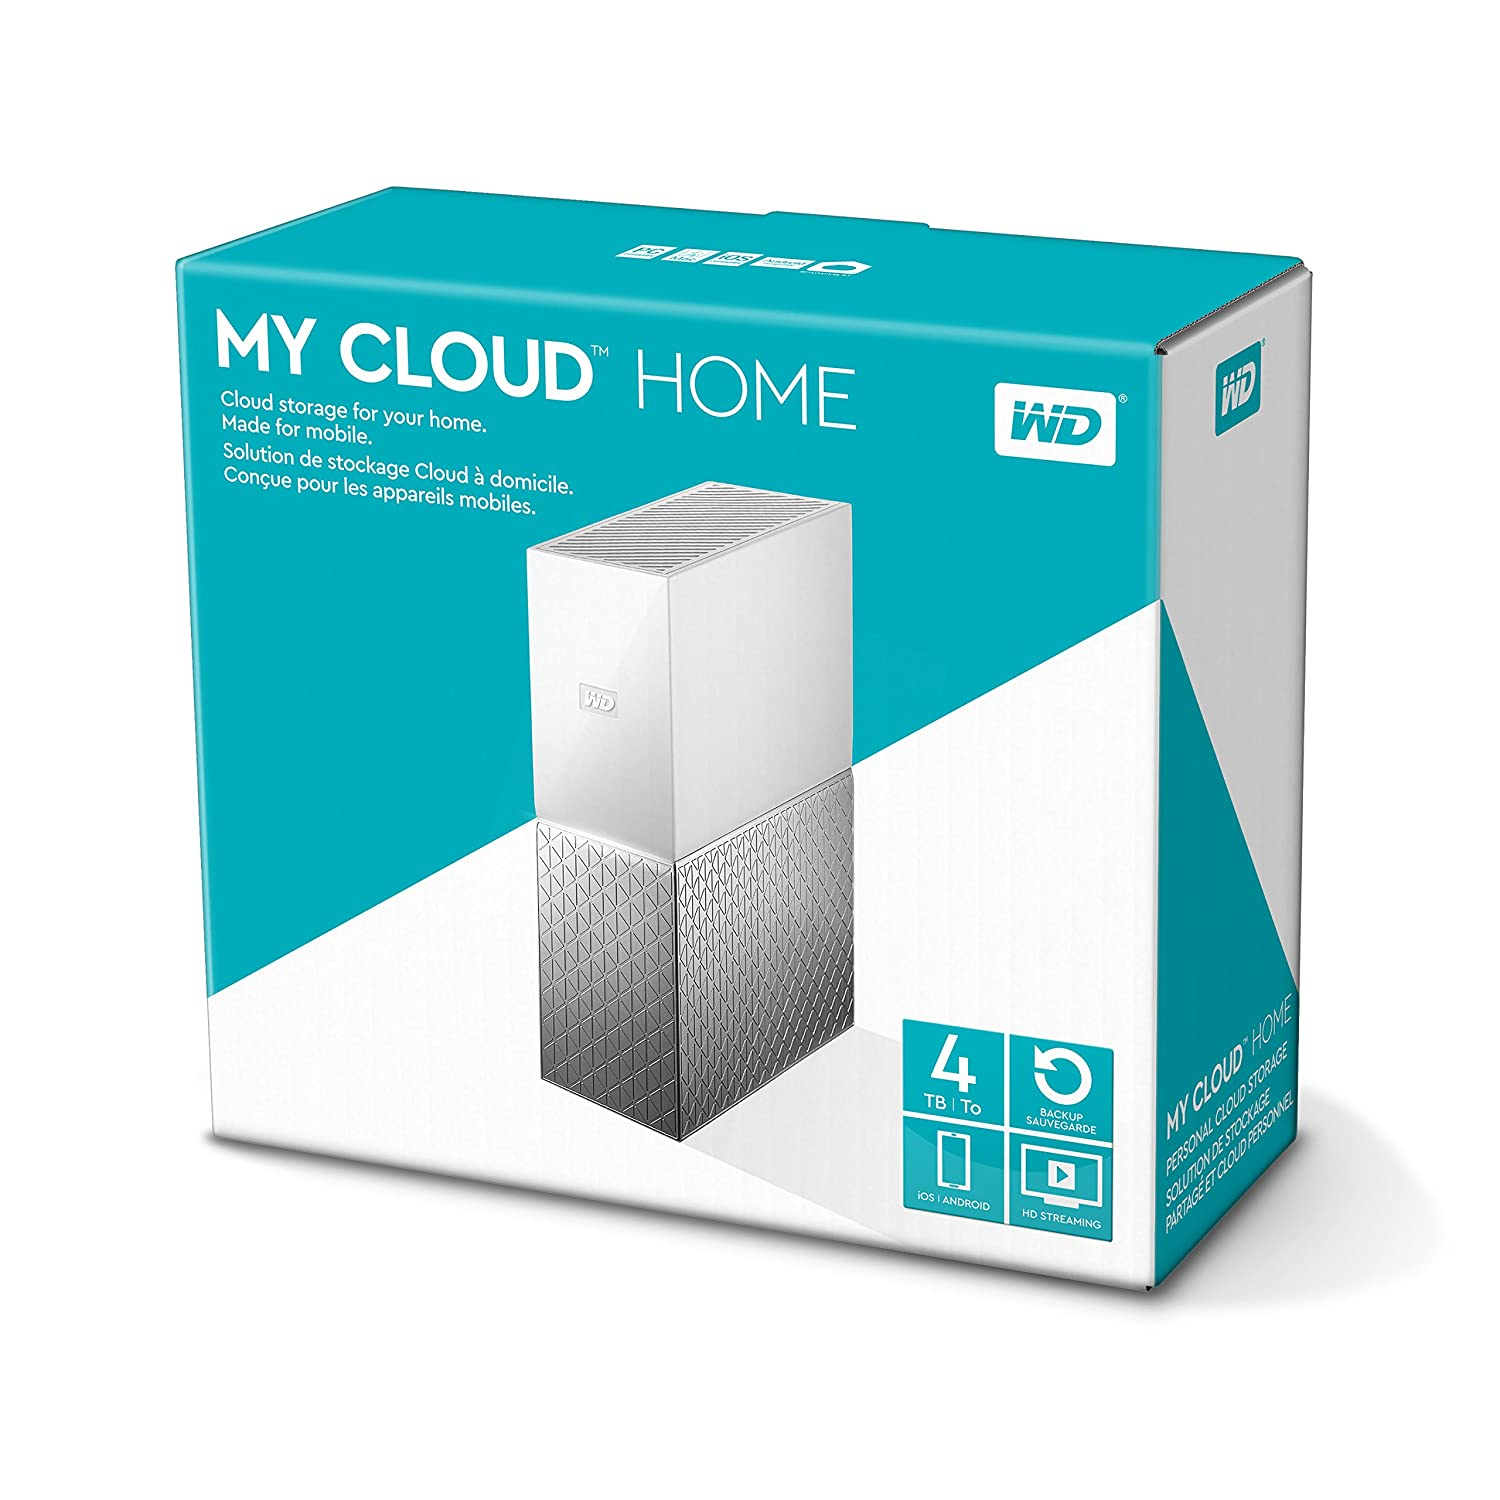 Disco duro USB 3.0 Western Digital My Cloud Home de 4TB por 127,20€ ¡¡Ahorras 143€!!